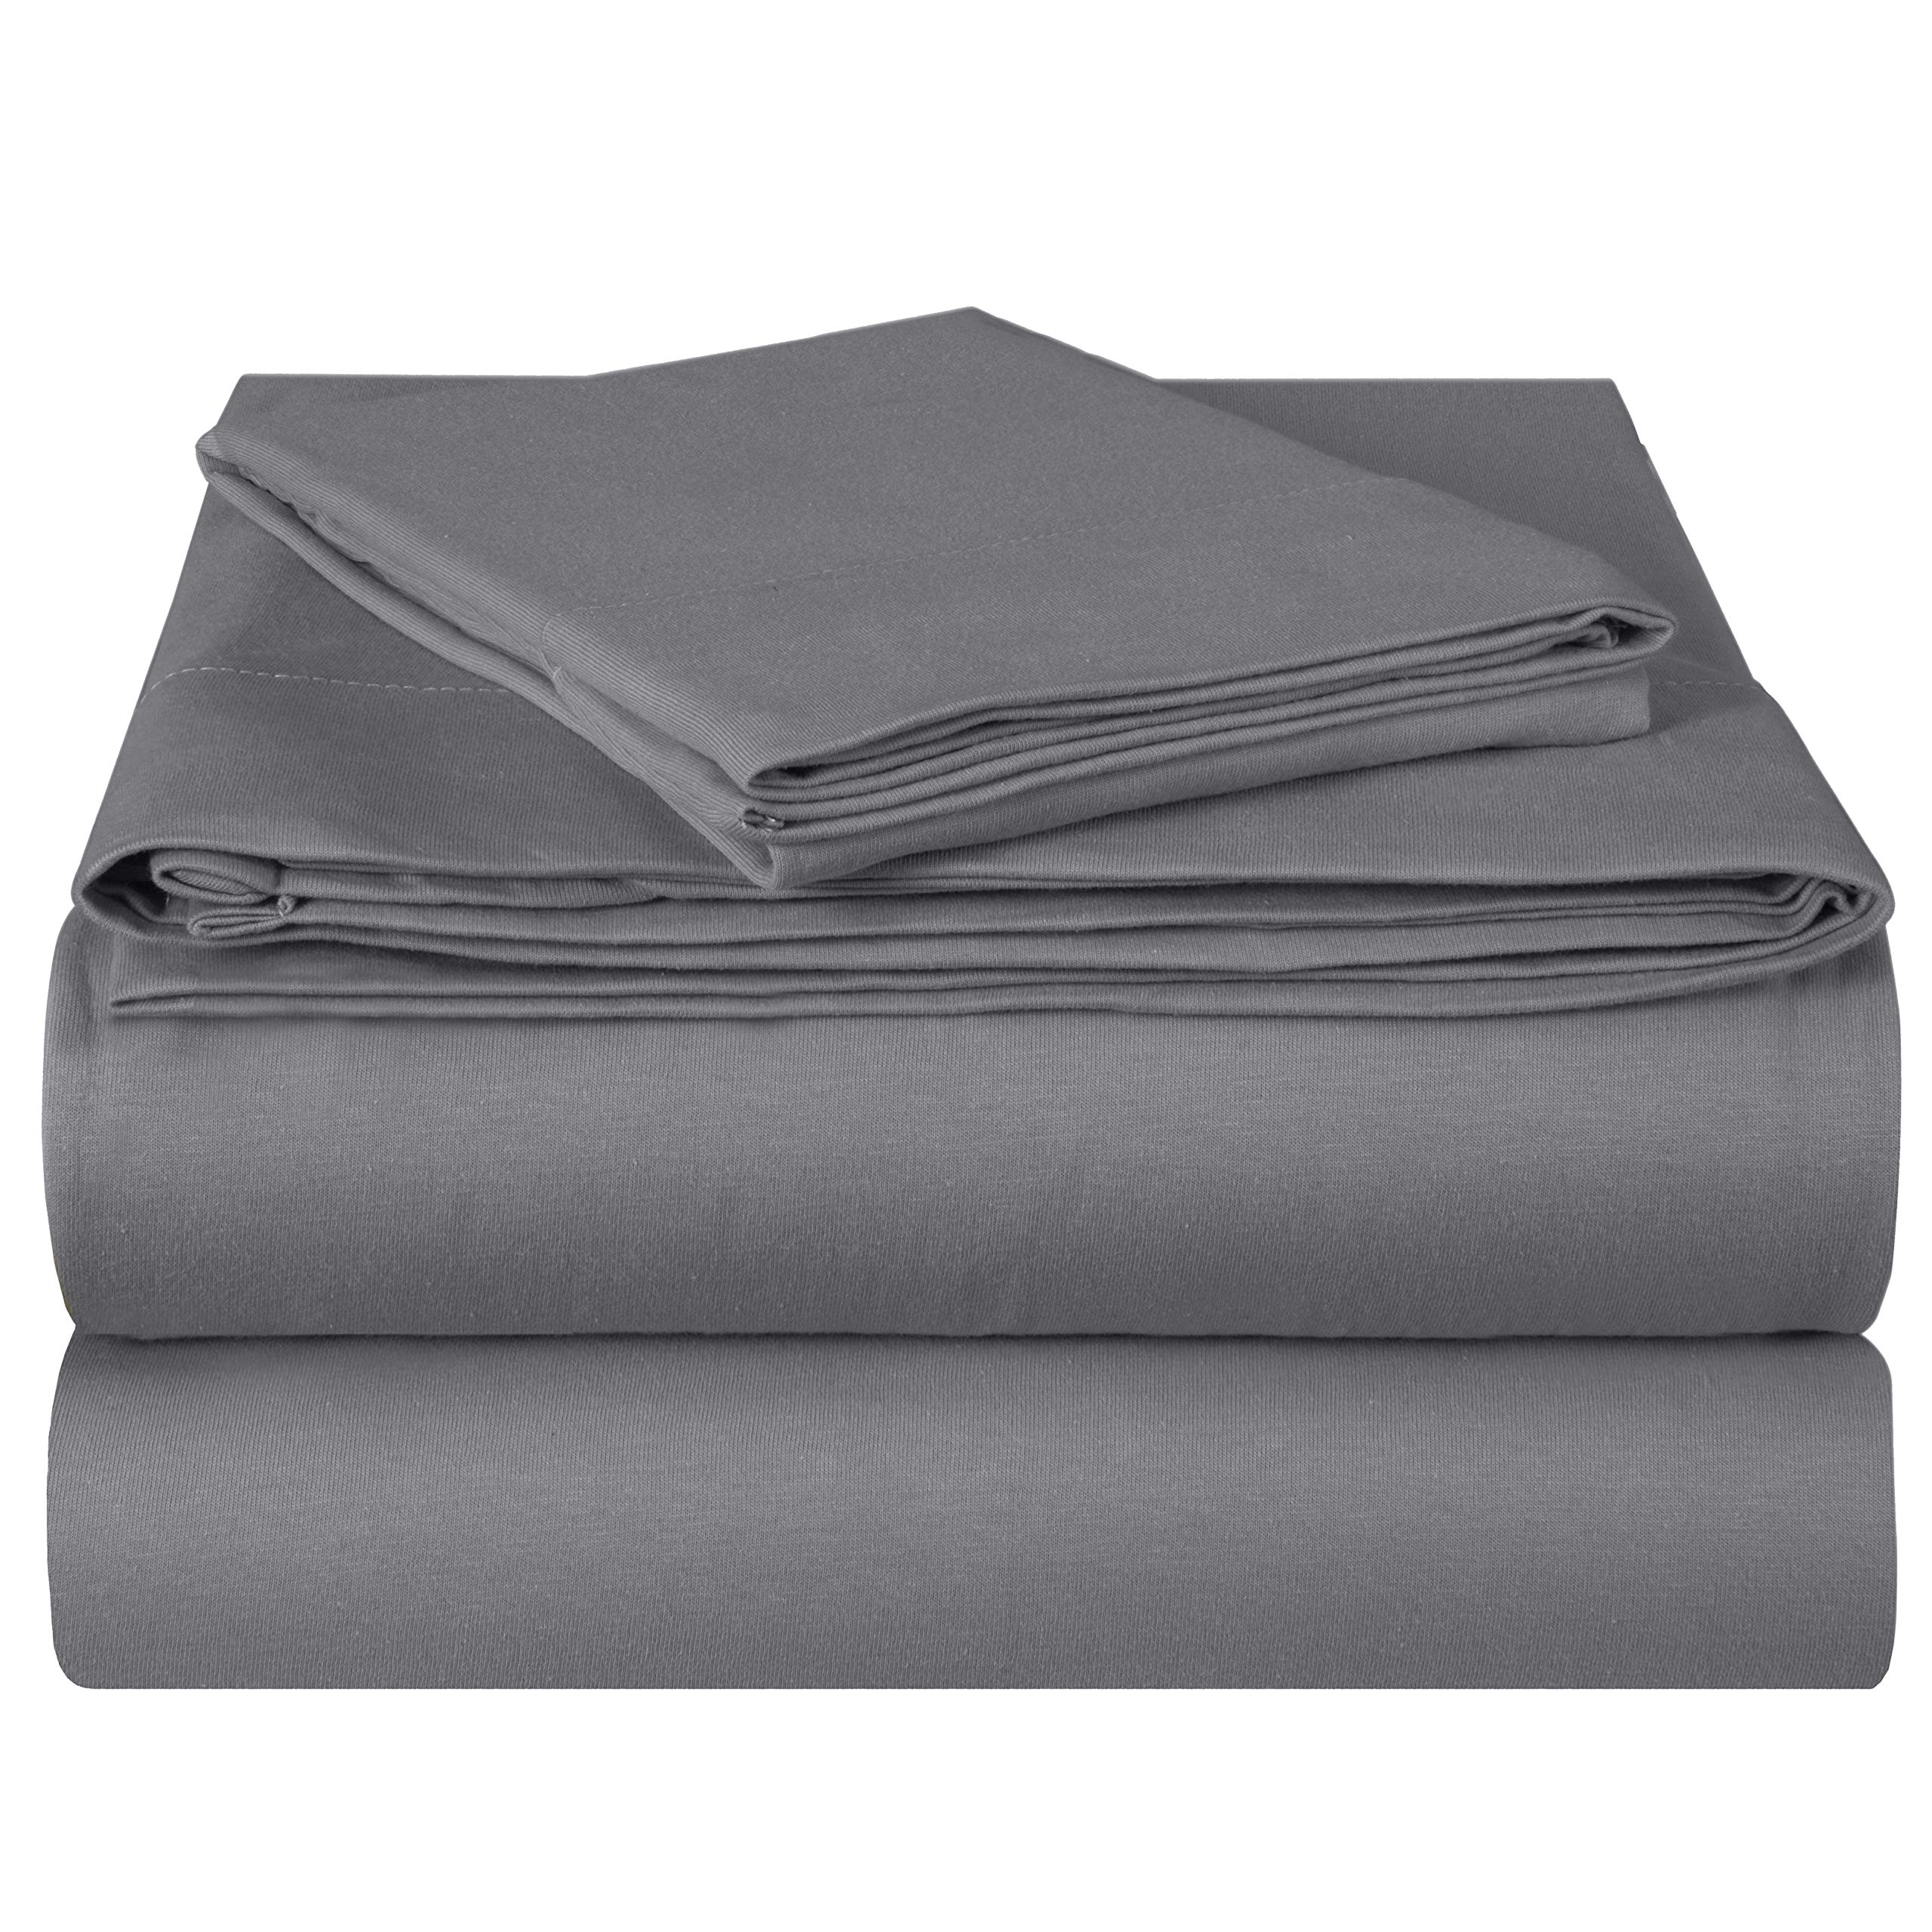 EnvioHome Quality Knit 100% Cotton Jersey Bed Sheet Set - 3 Piece - Twin, Charcoal